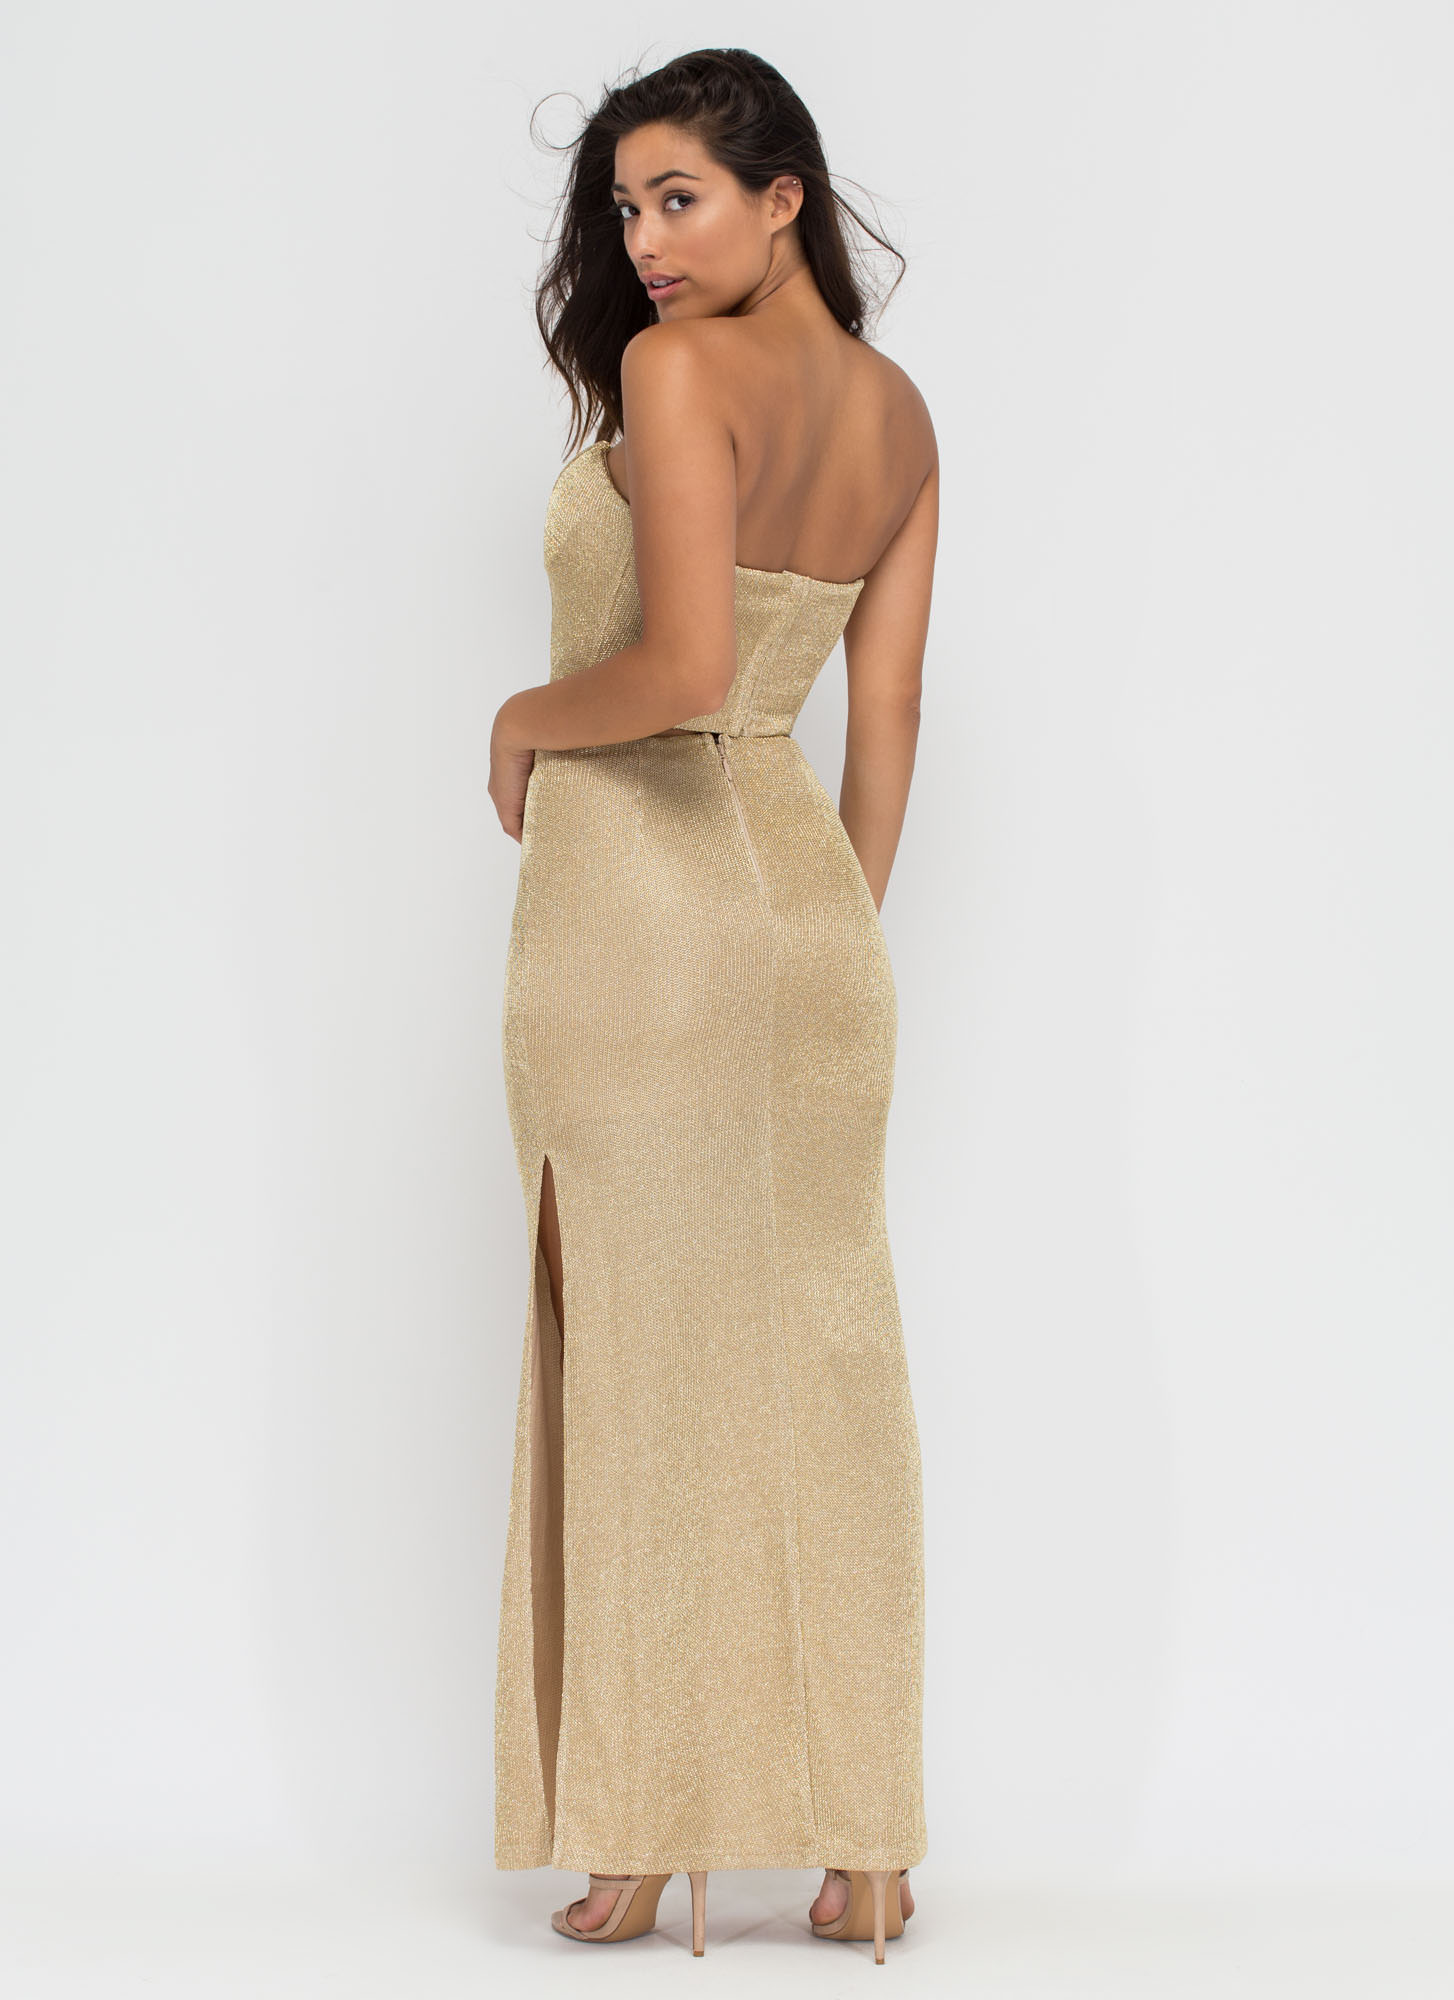 Head To Toe Glam Two-Piece Set GOLD (Final Sale)